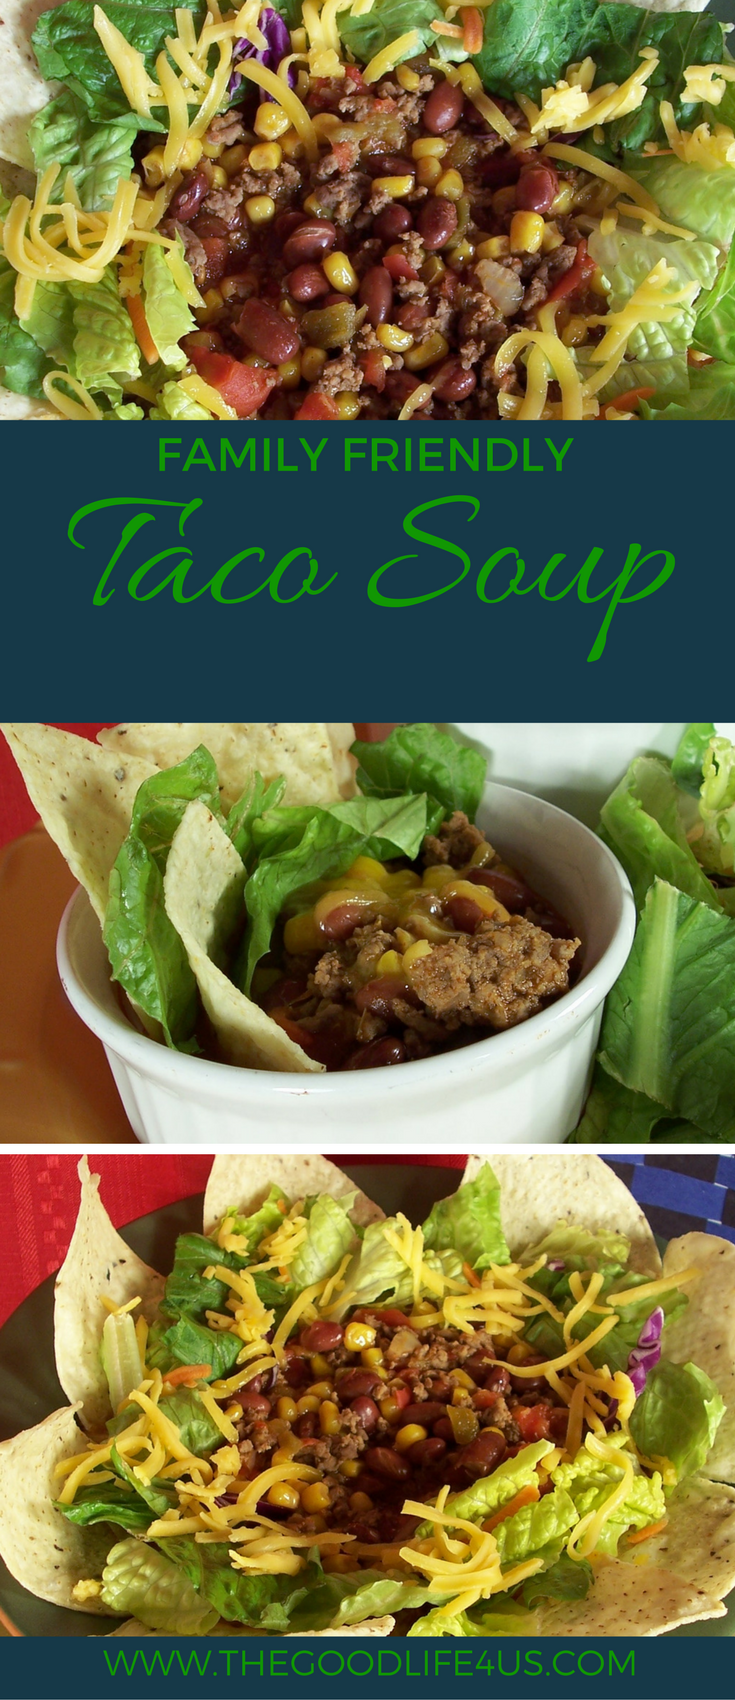 Family Friendly Taco Soup